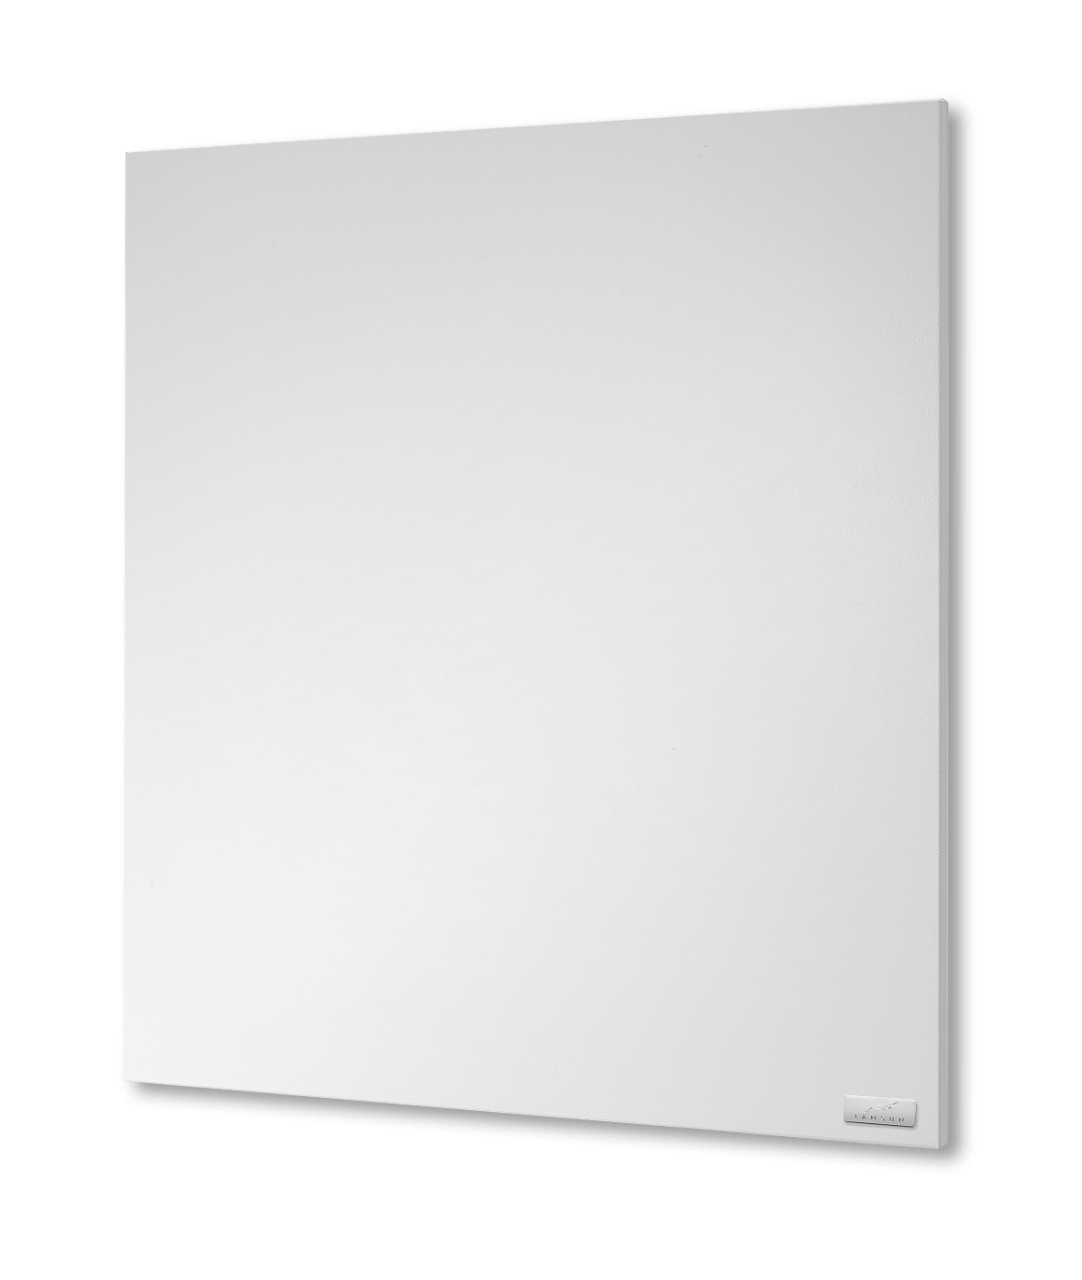 Tansun Iridium Radiant Heat Panel 600 Series